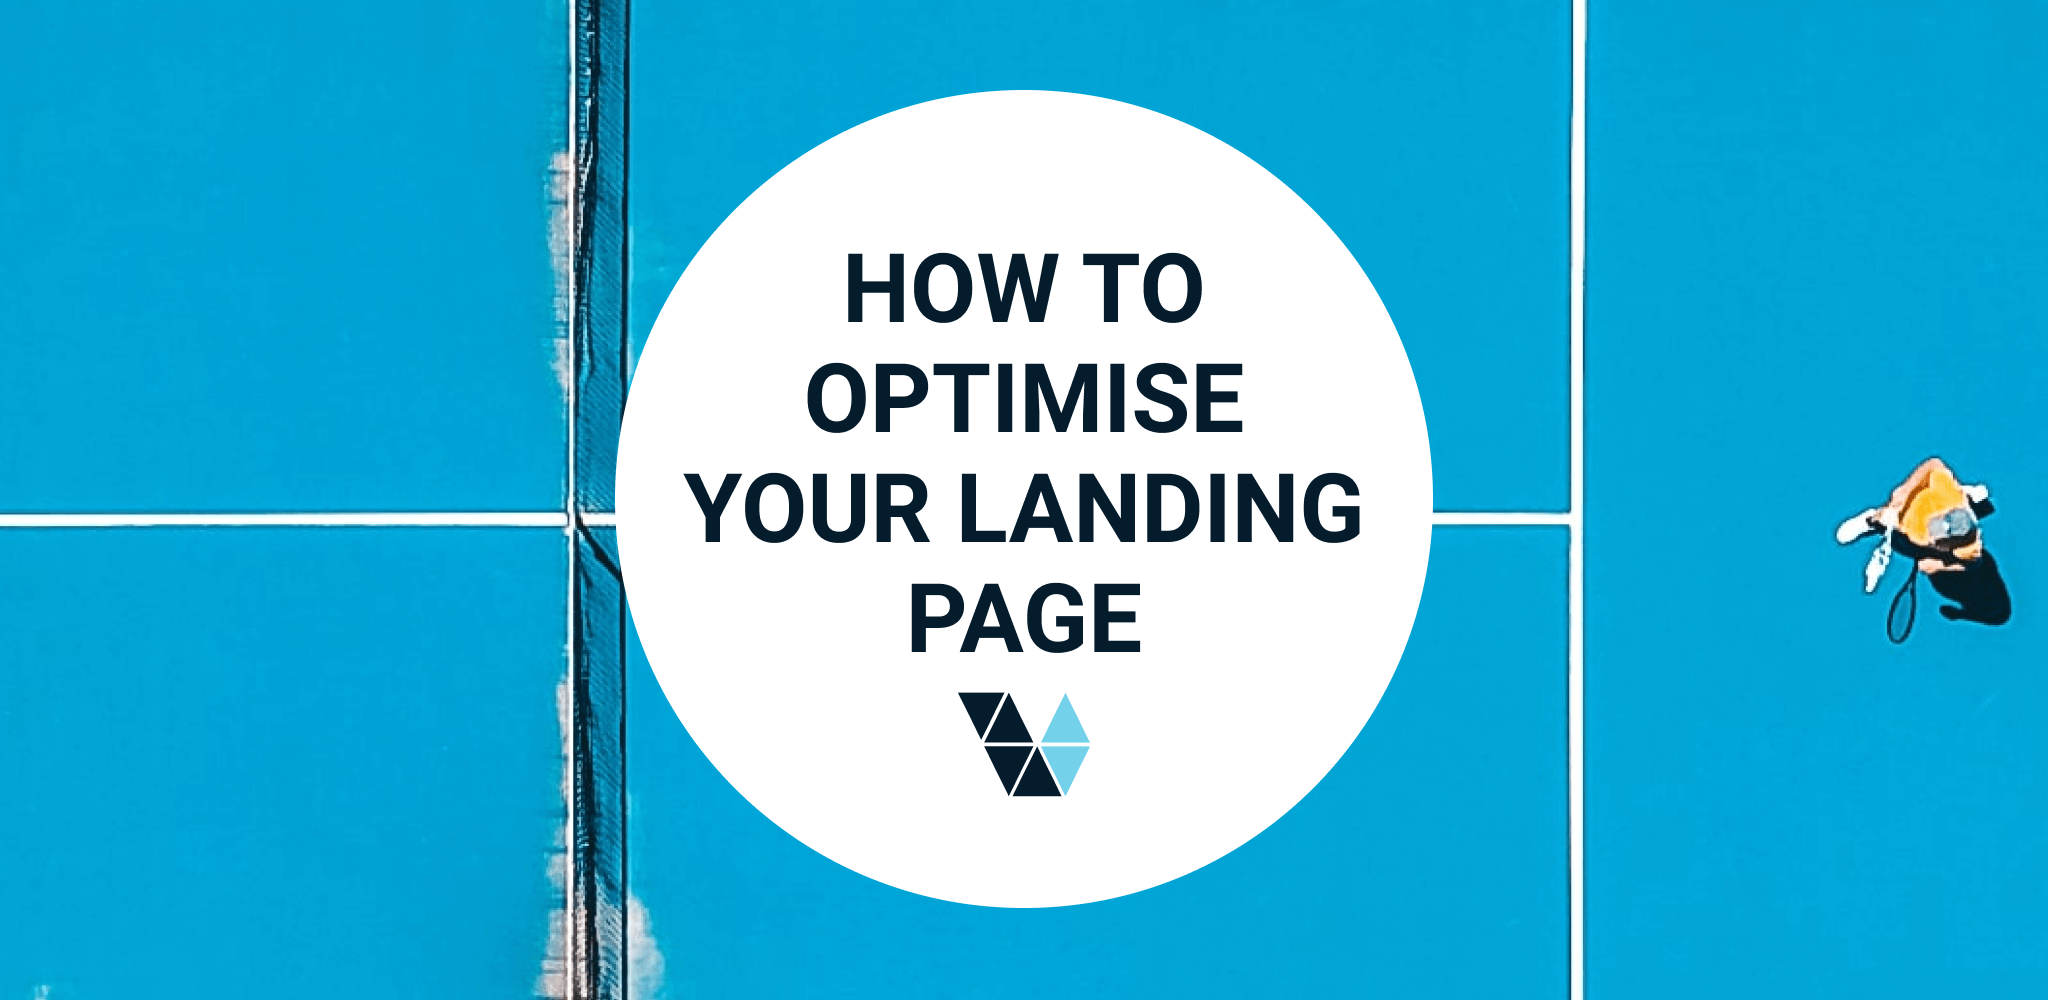 How to Optimise Your Landing Page